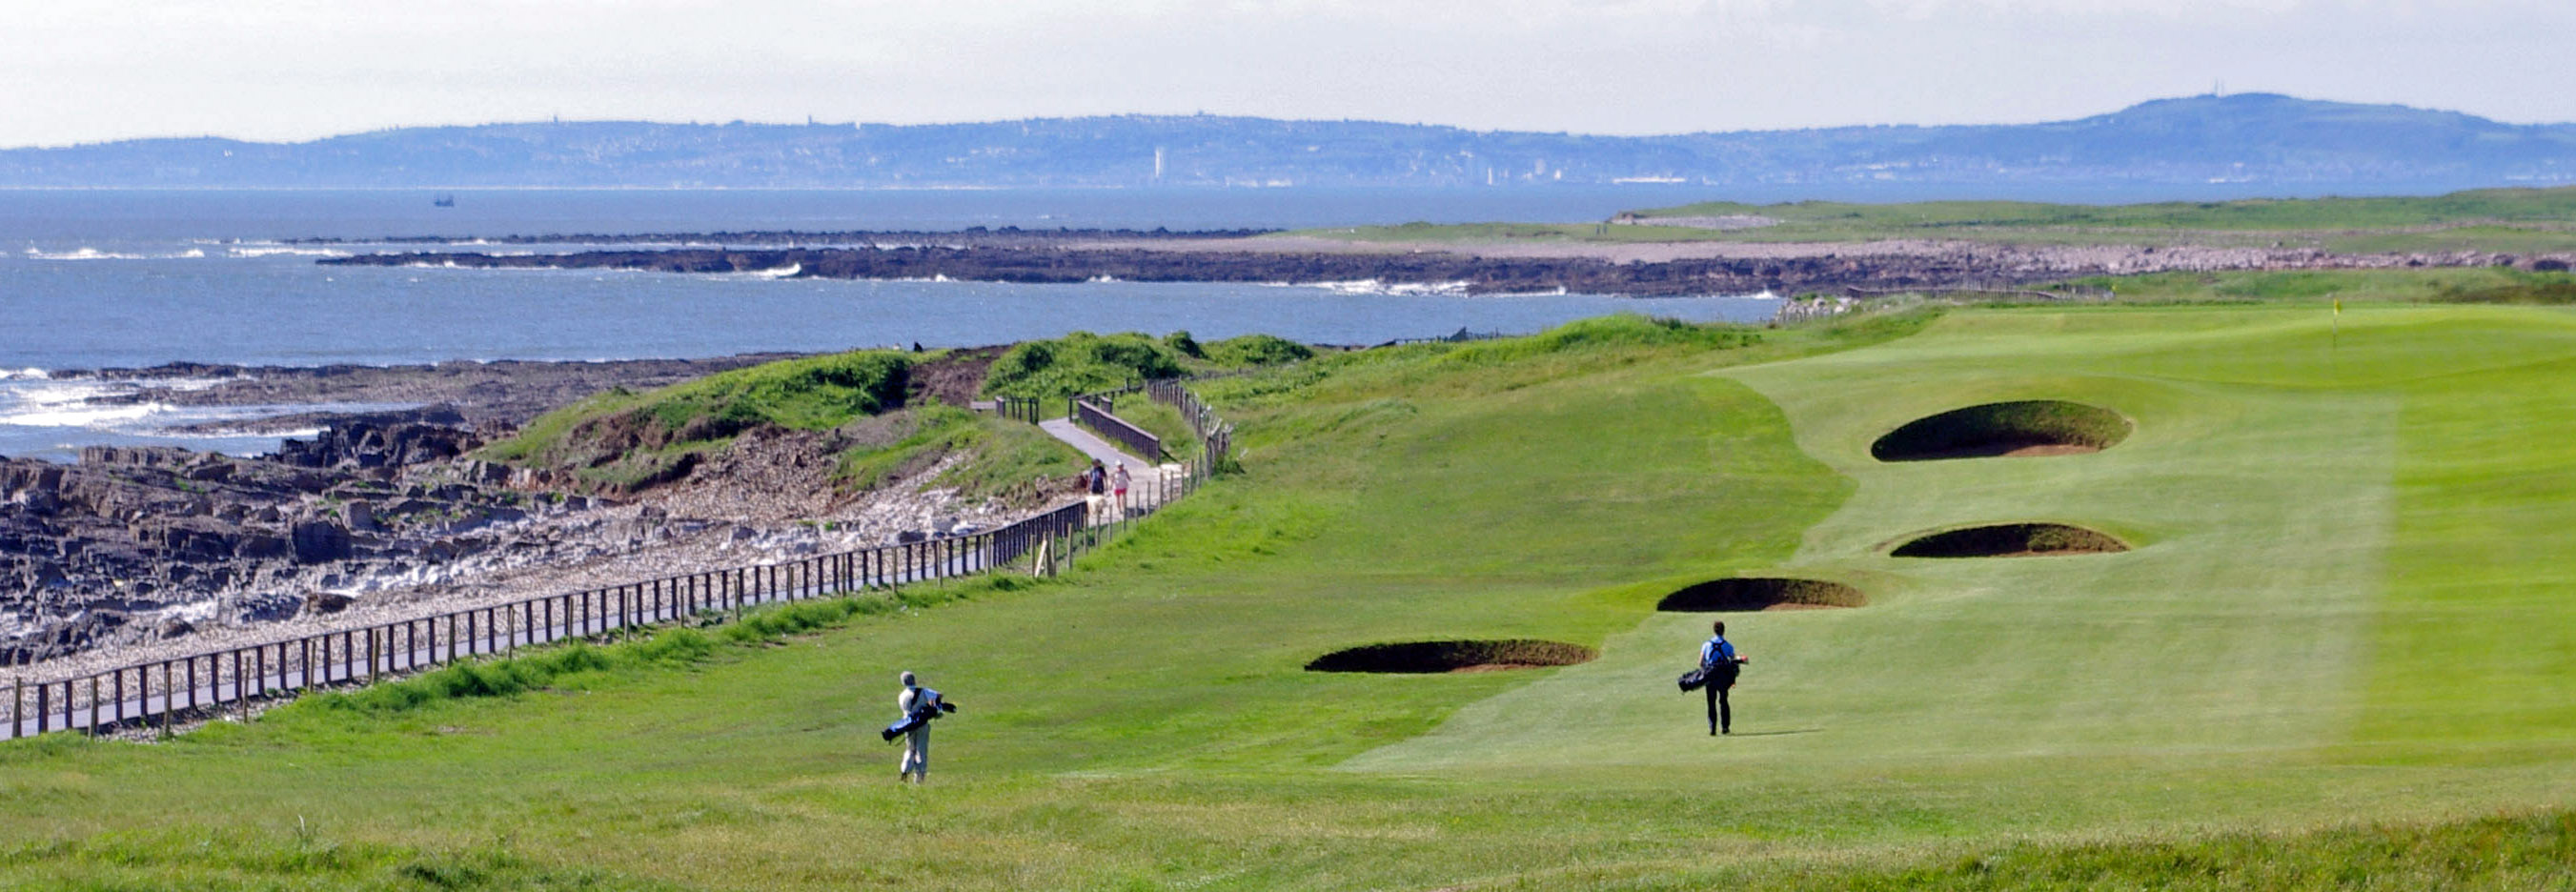 Royal Porthcawl Golf Club Wales